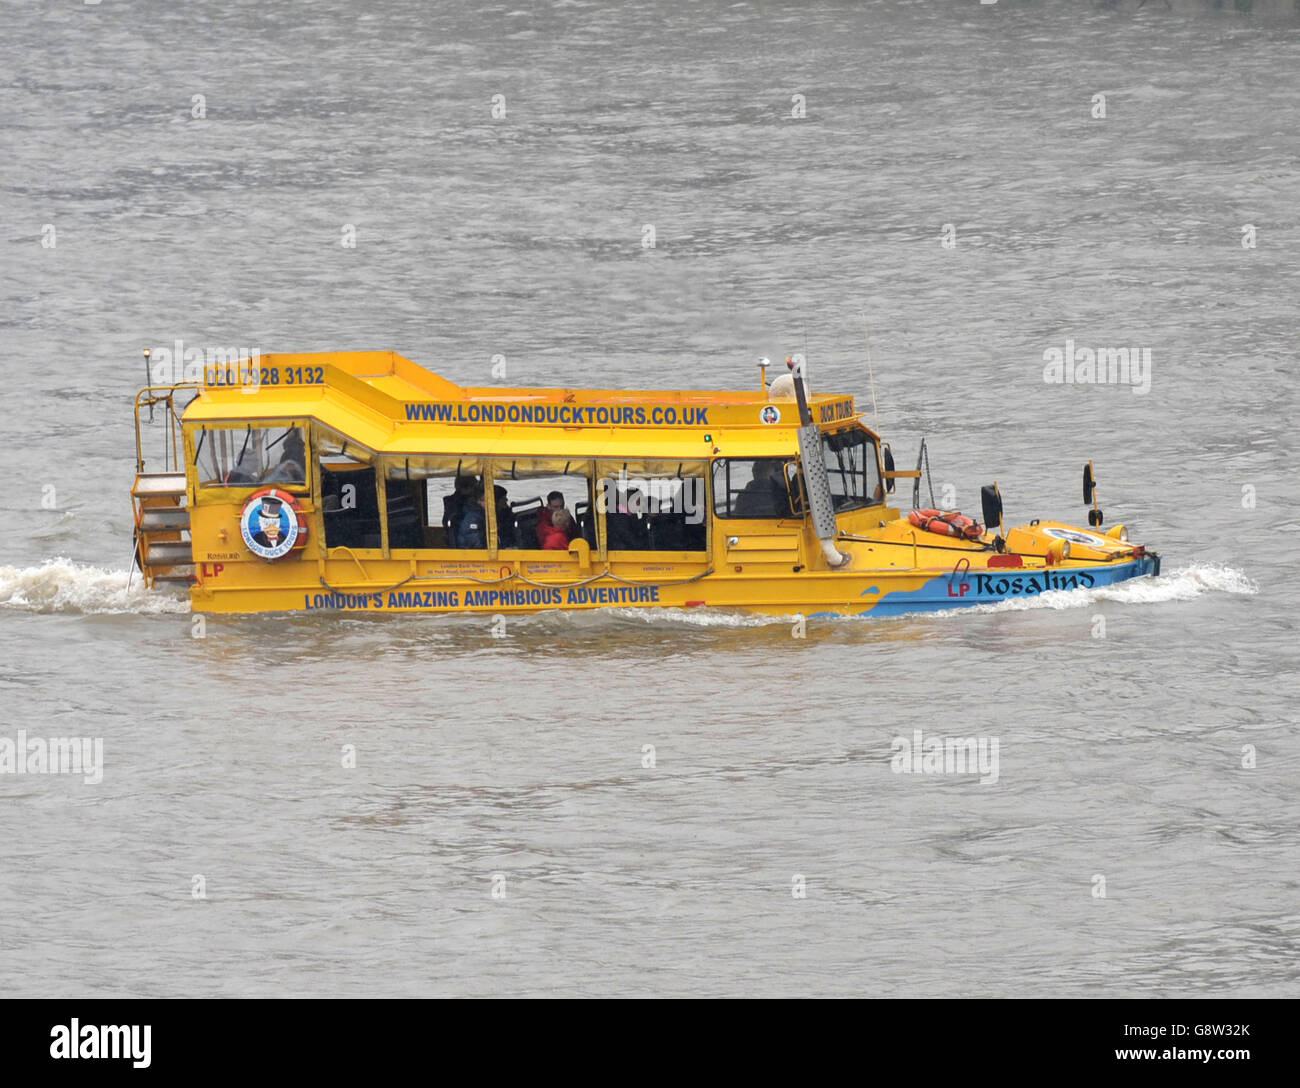 London Duck Tours - stock - Stock Image